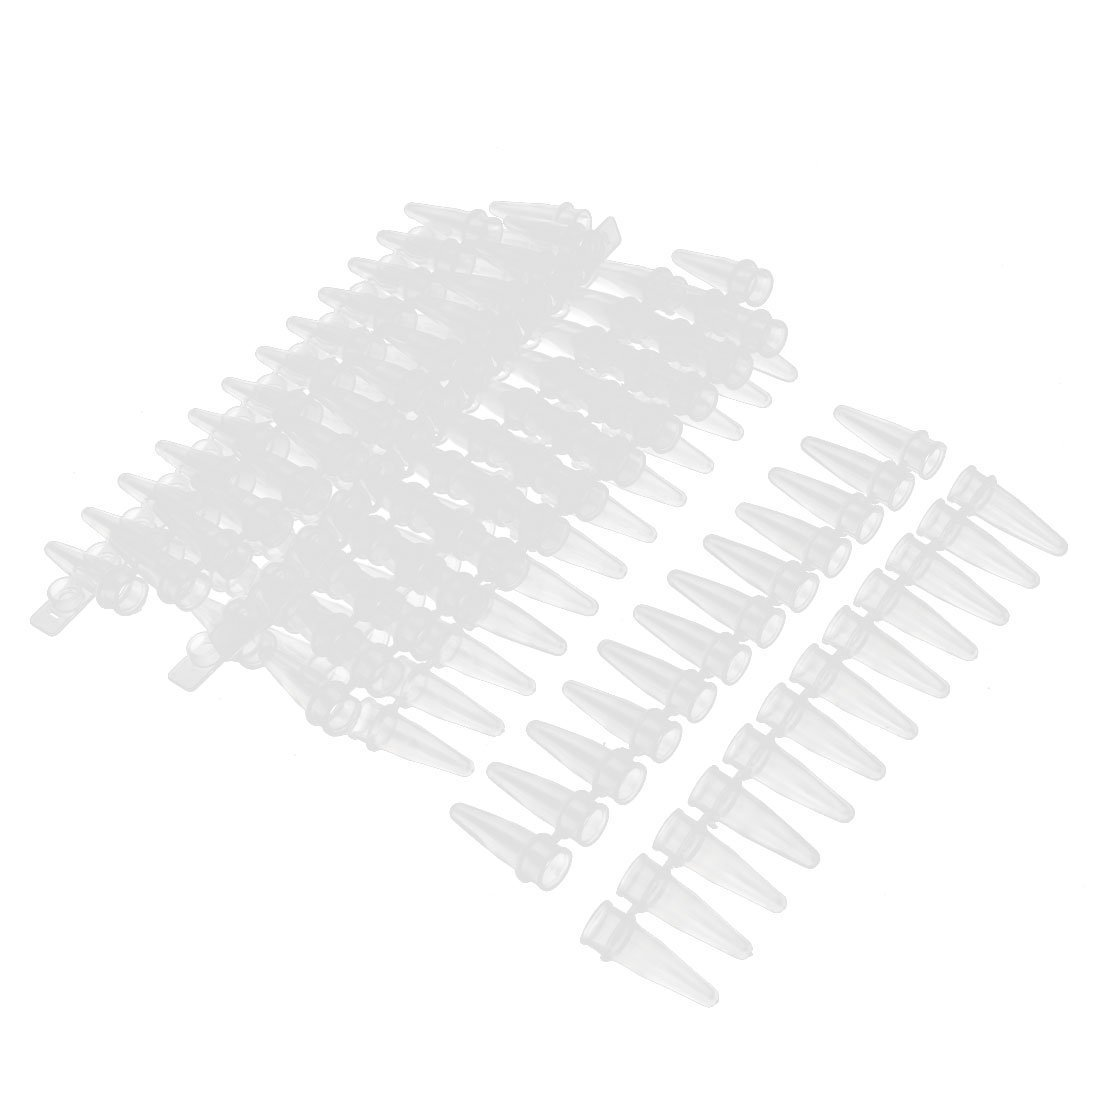 Thin Wall PCR 12-tube Strips w Caps for Agarose Gene Experiment 10 Pcs uxcell US-SA-AJD-57236